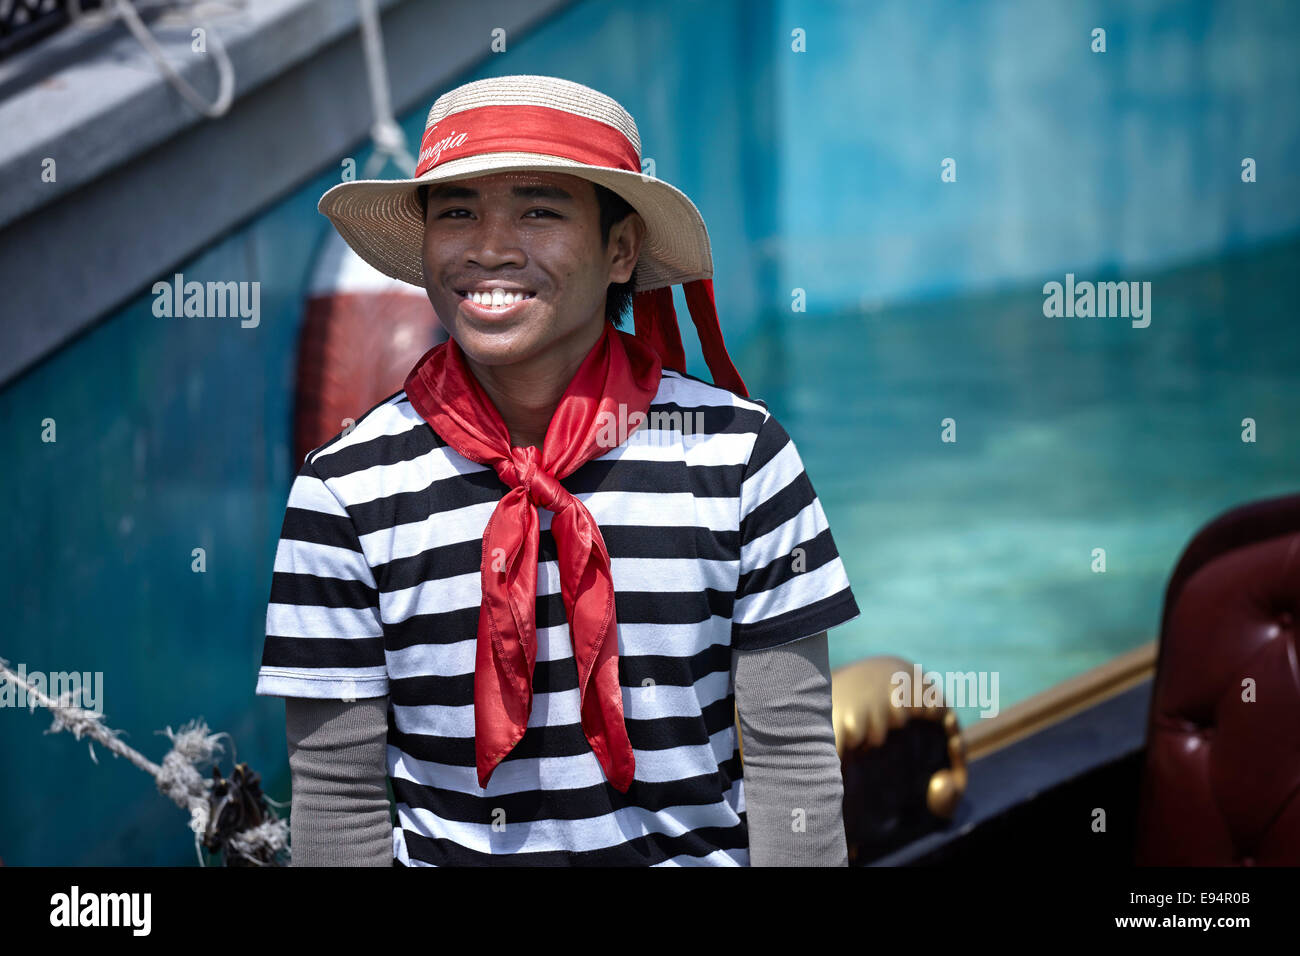 smiling gondolier in traditional attire stock photo royalty free image 74479227 alamy. Black Bedroom Furniture Sets. Home Design Ideas